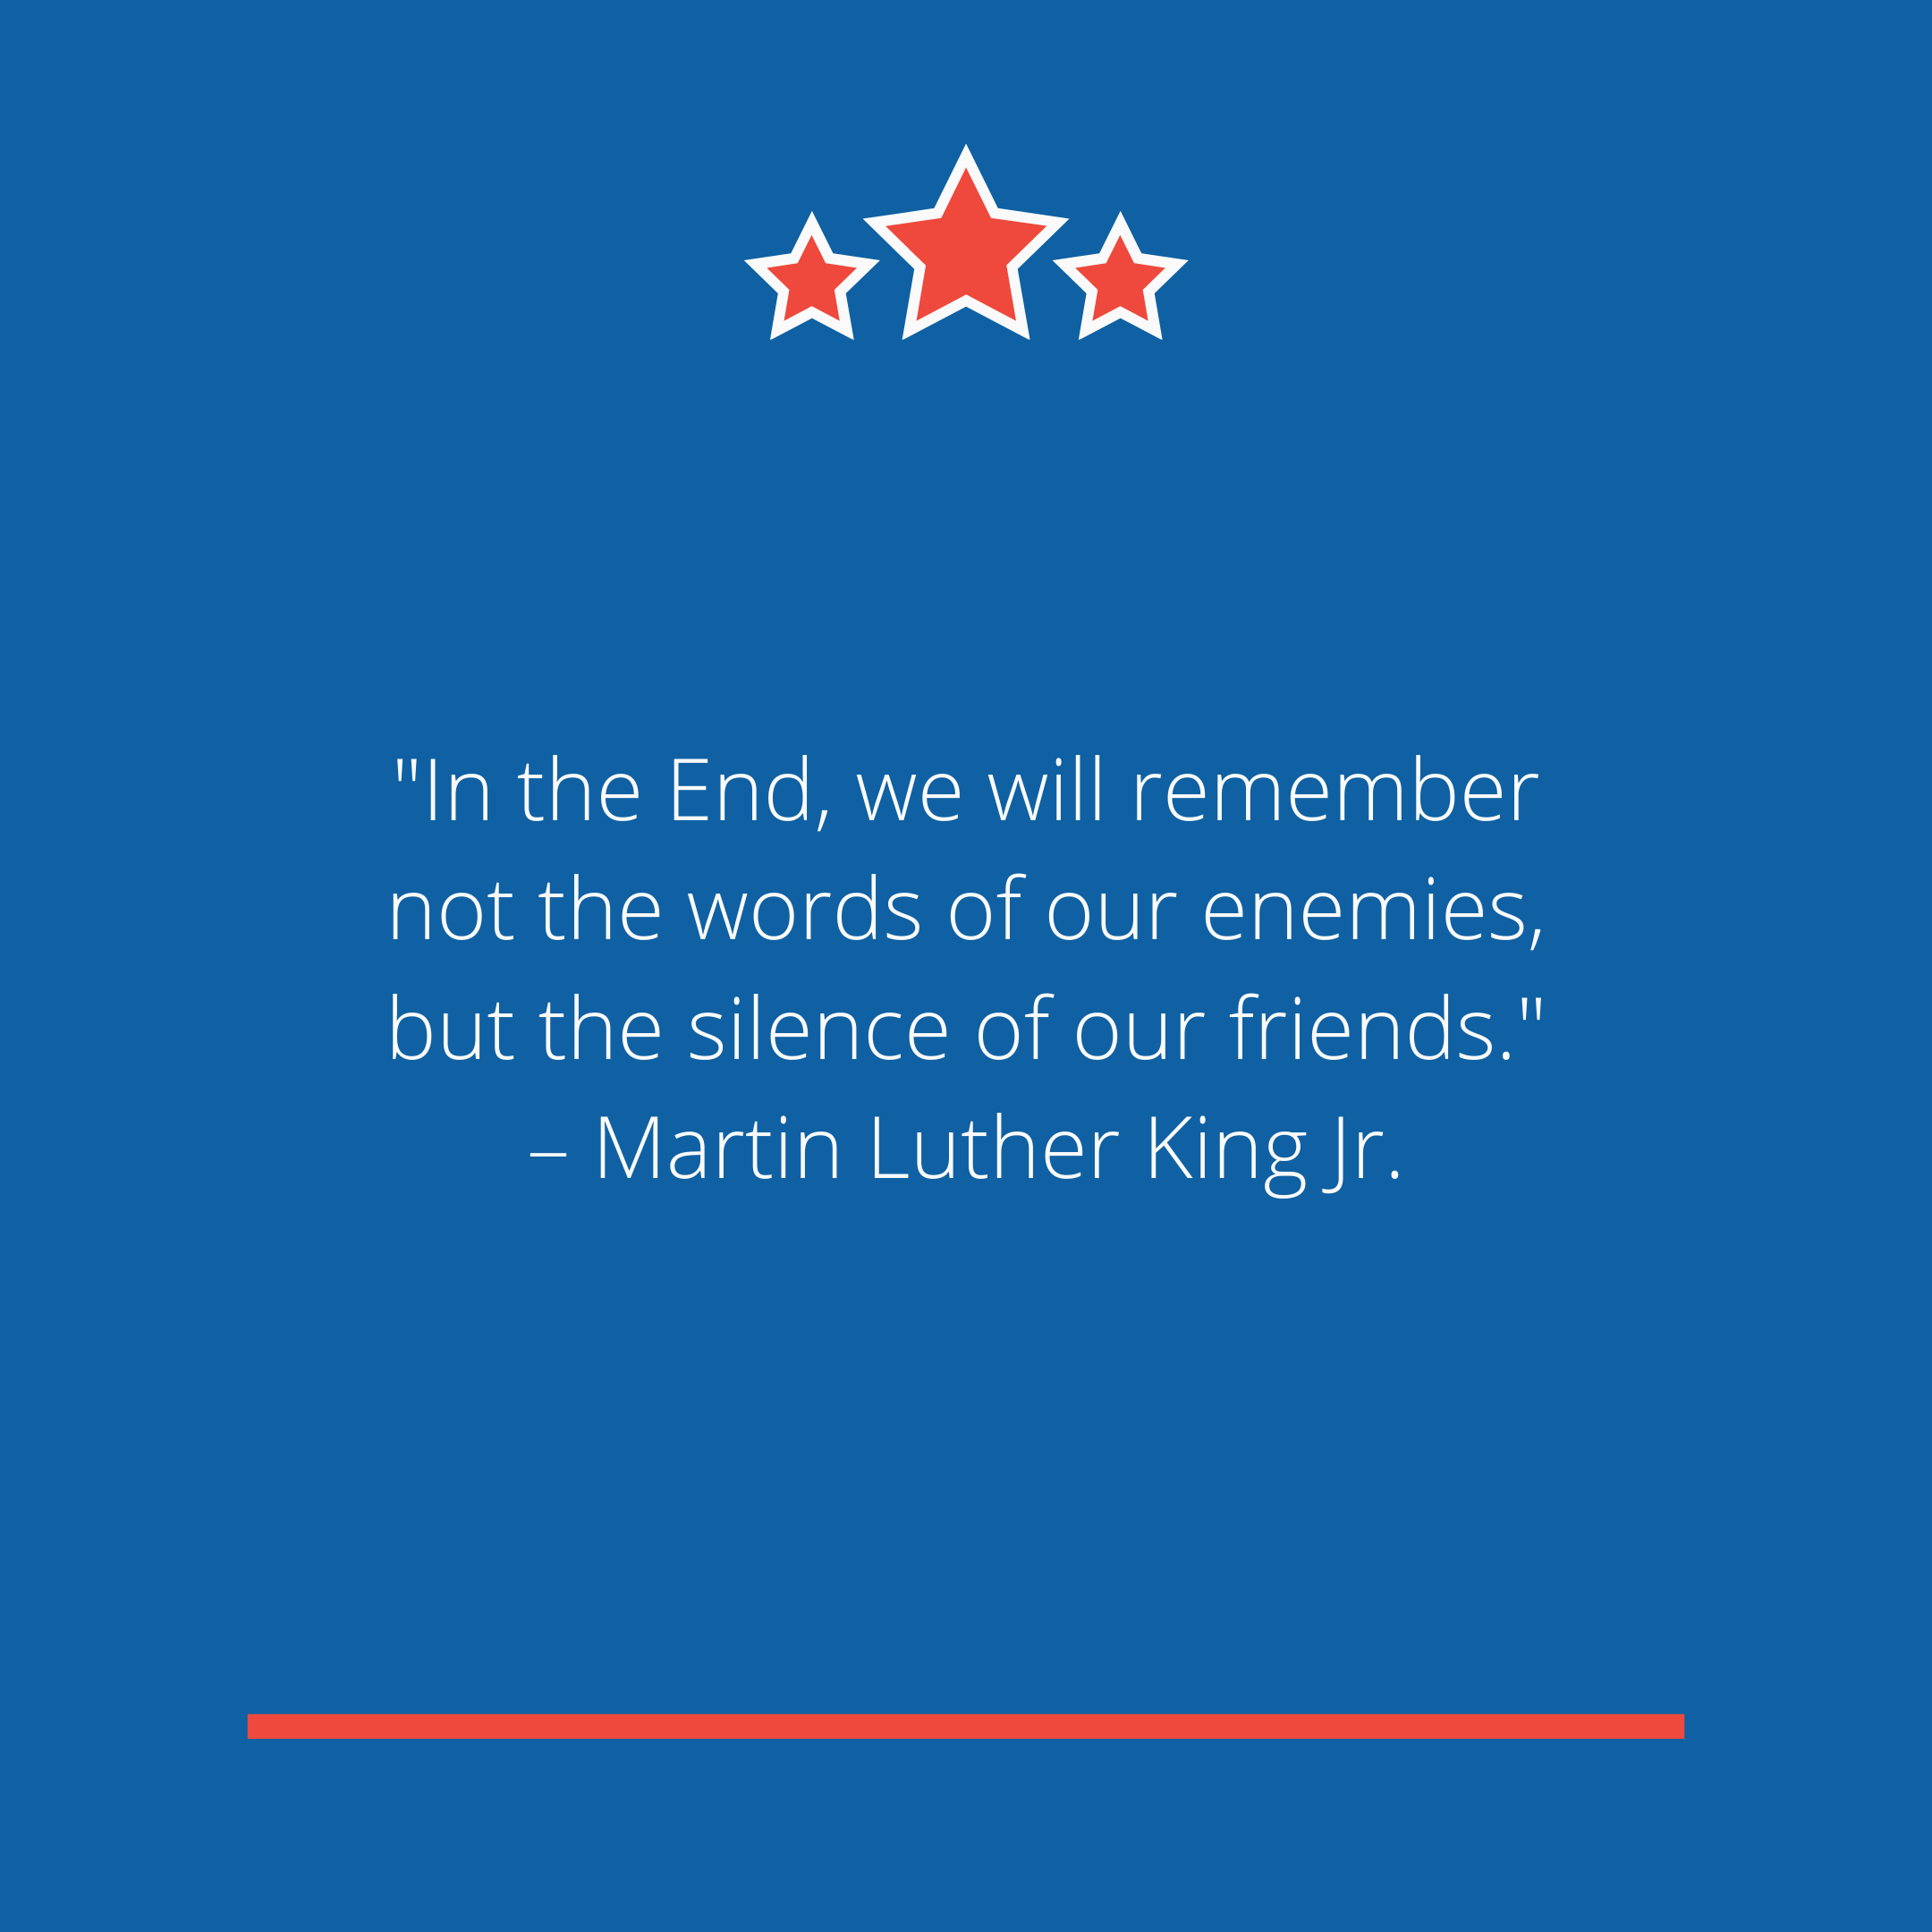 """In the End, we will remember not the words of our enemies, but the silence of our friends."" –Martin Luther King Jr."